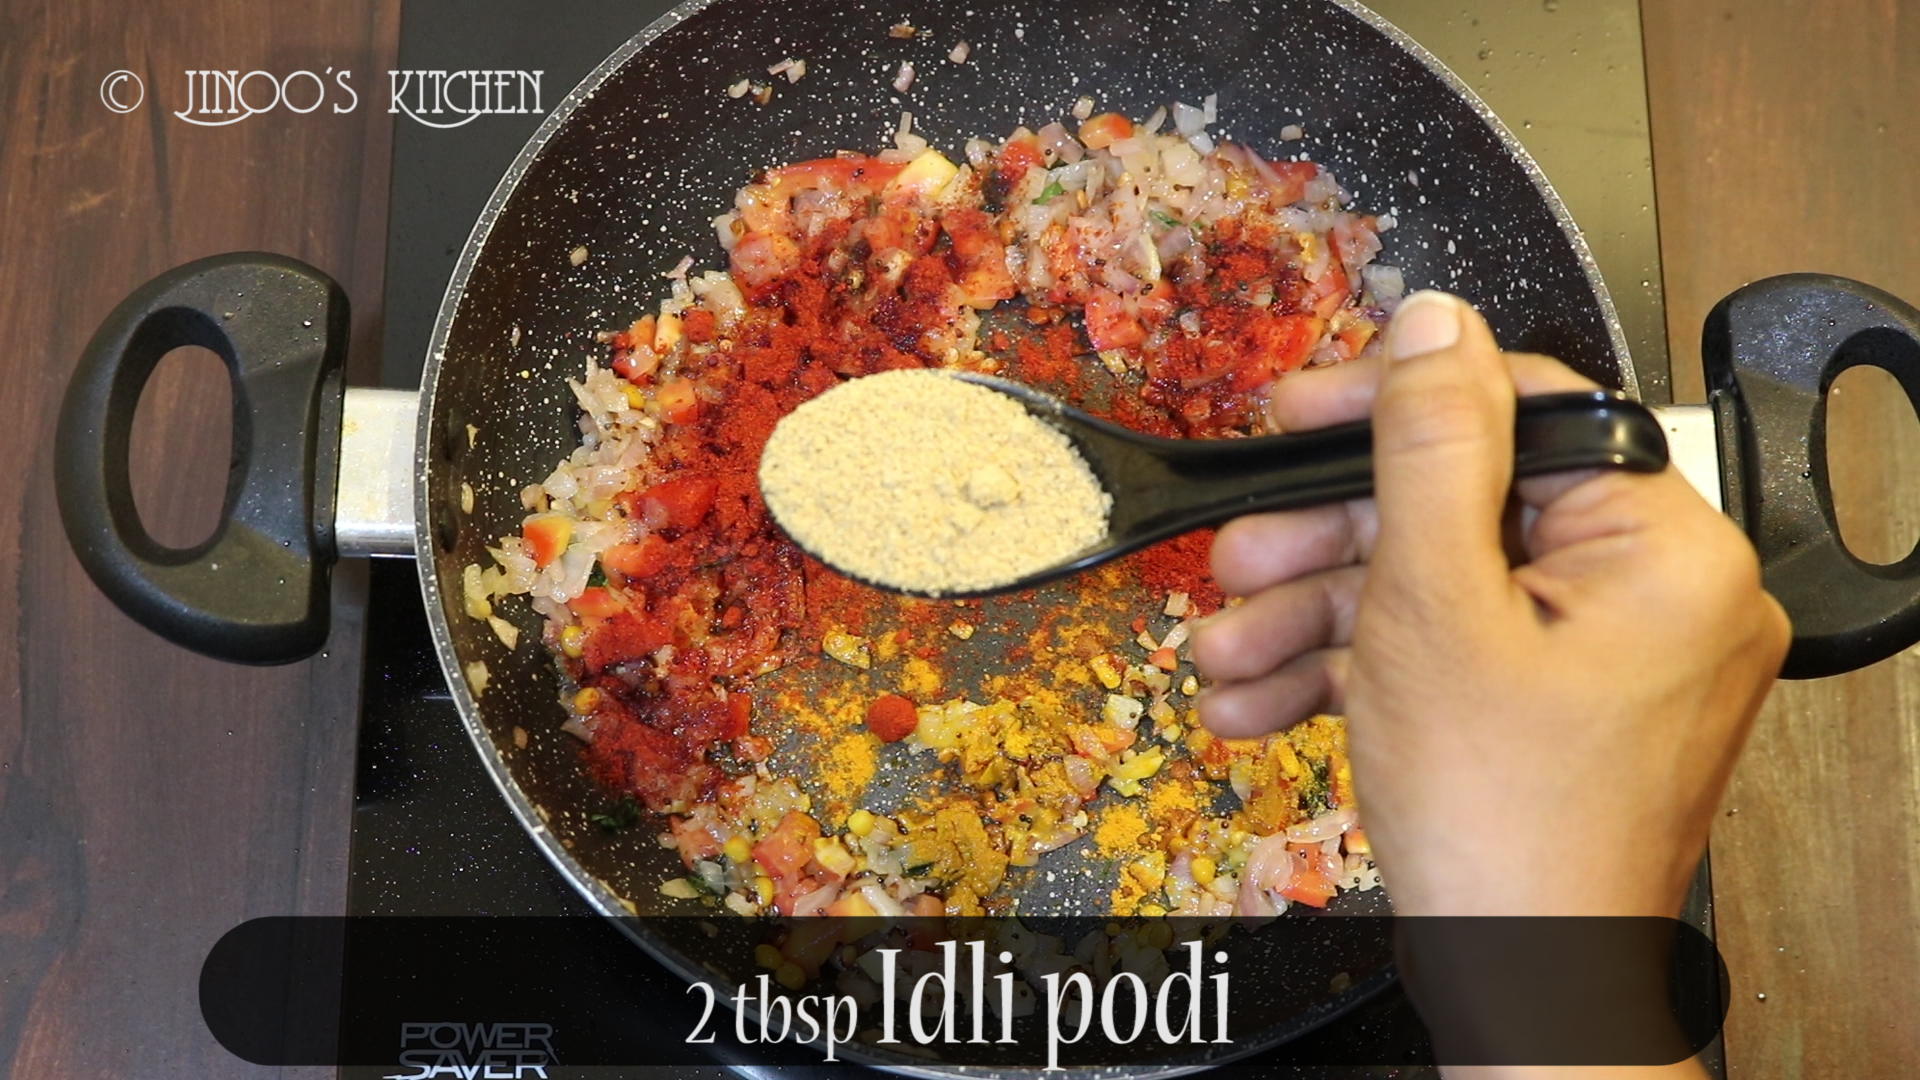 Spicy Idli upma recipe